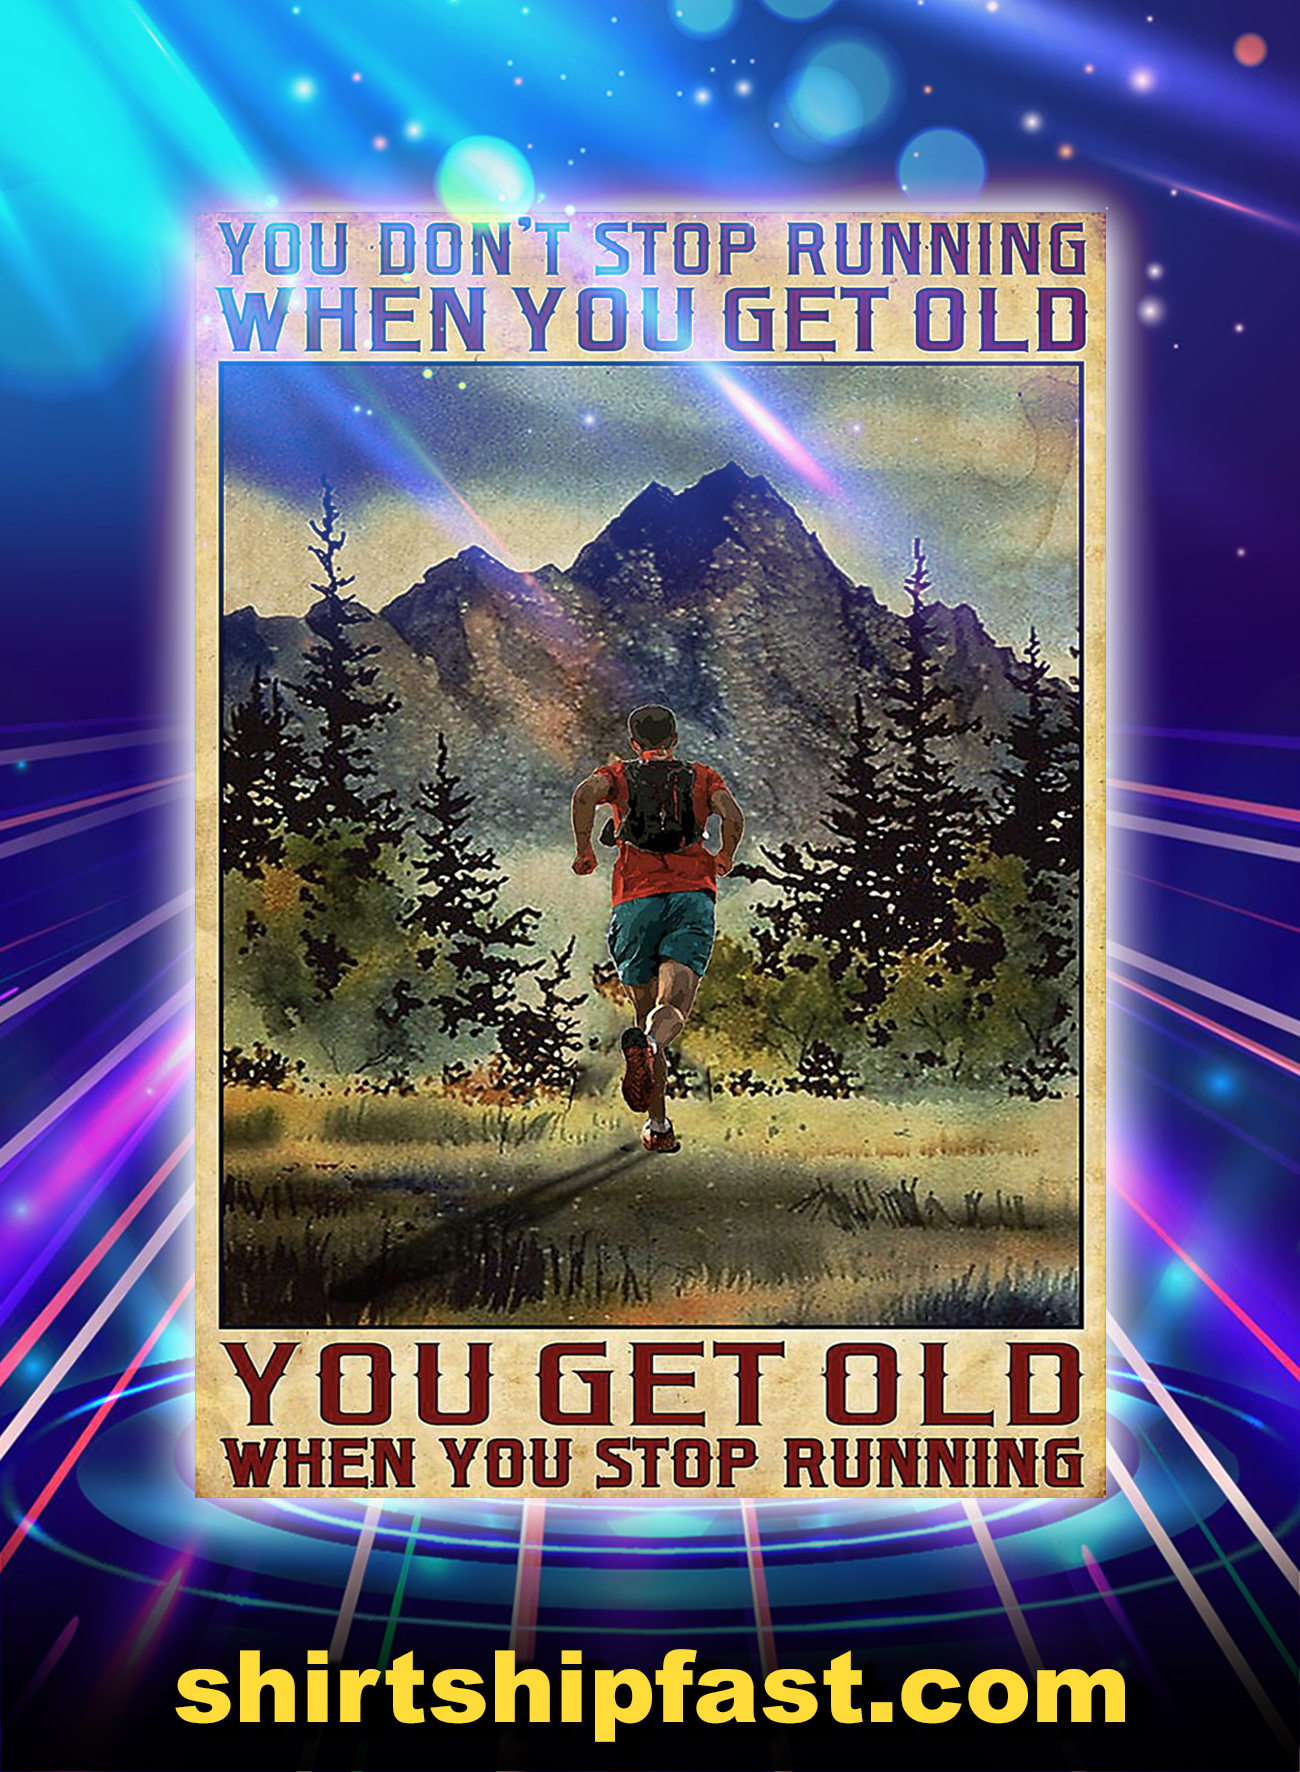 You don't stop running when you get old poster - A1